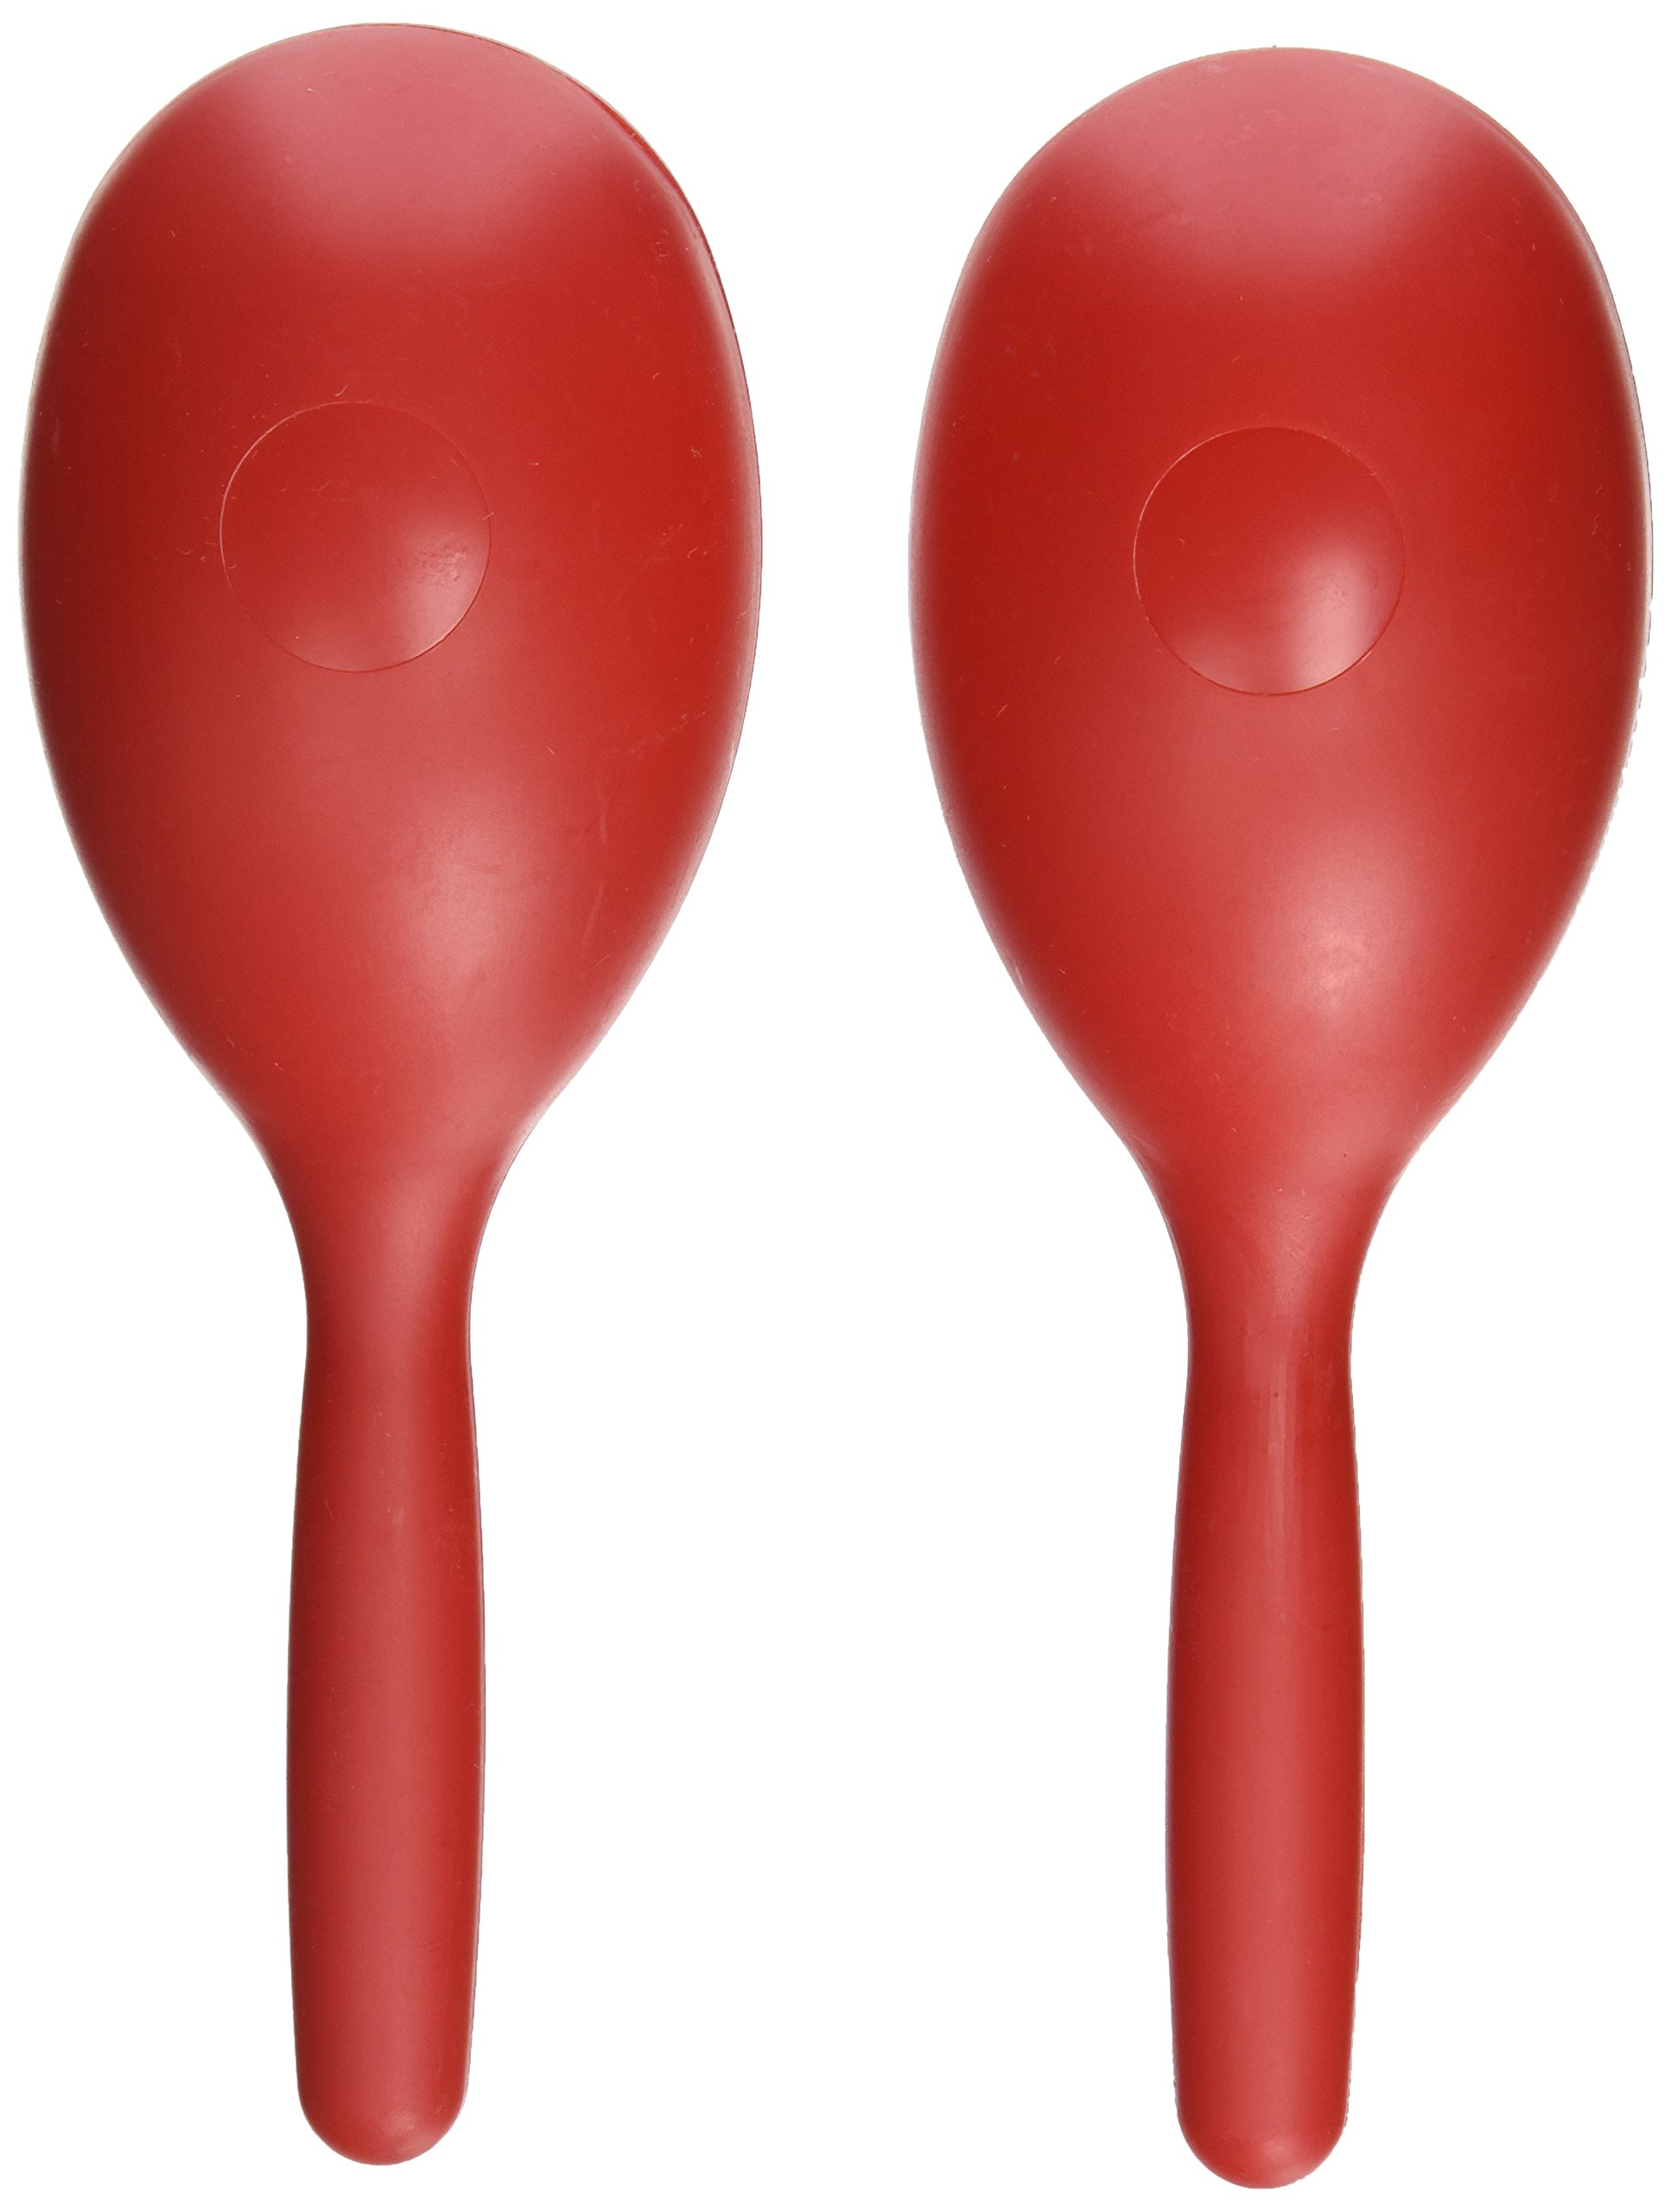 D'Luca Percussion Red Fish Style Plastic Maracas M20-RD by D'Luca